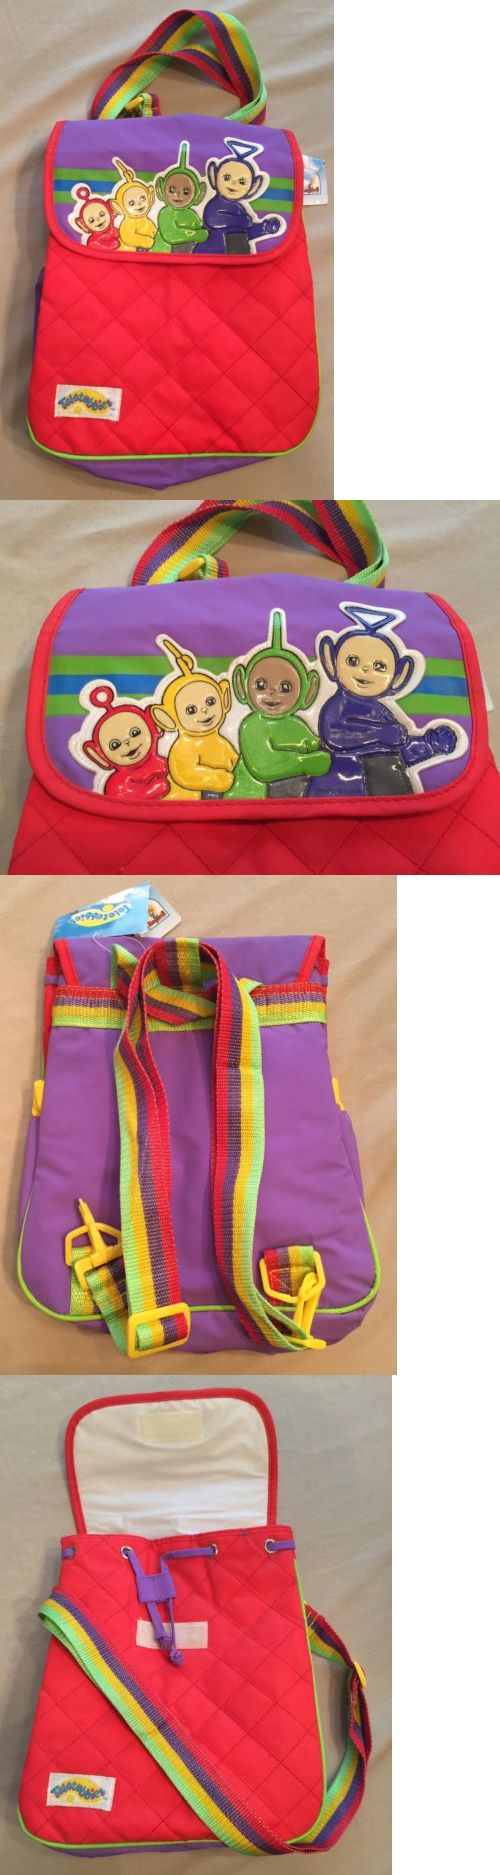 Teletubbies 756: Very Rare Teletubbies Insulated Bag, Po, Dipsy, Tinky Winky, And La La, Nwt, 1999 -> BUY IT NOW ONLY: $54.99 on eBay!